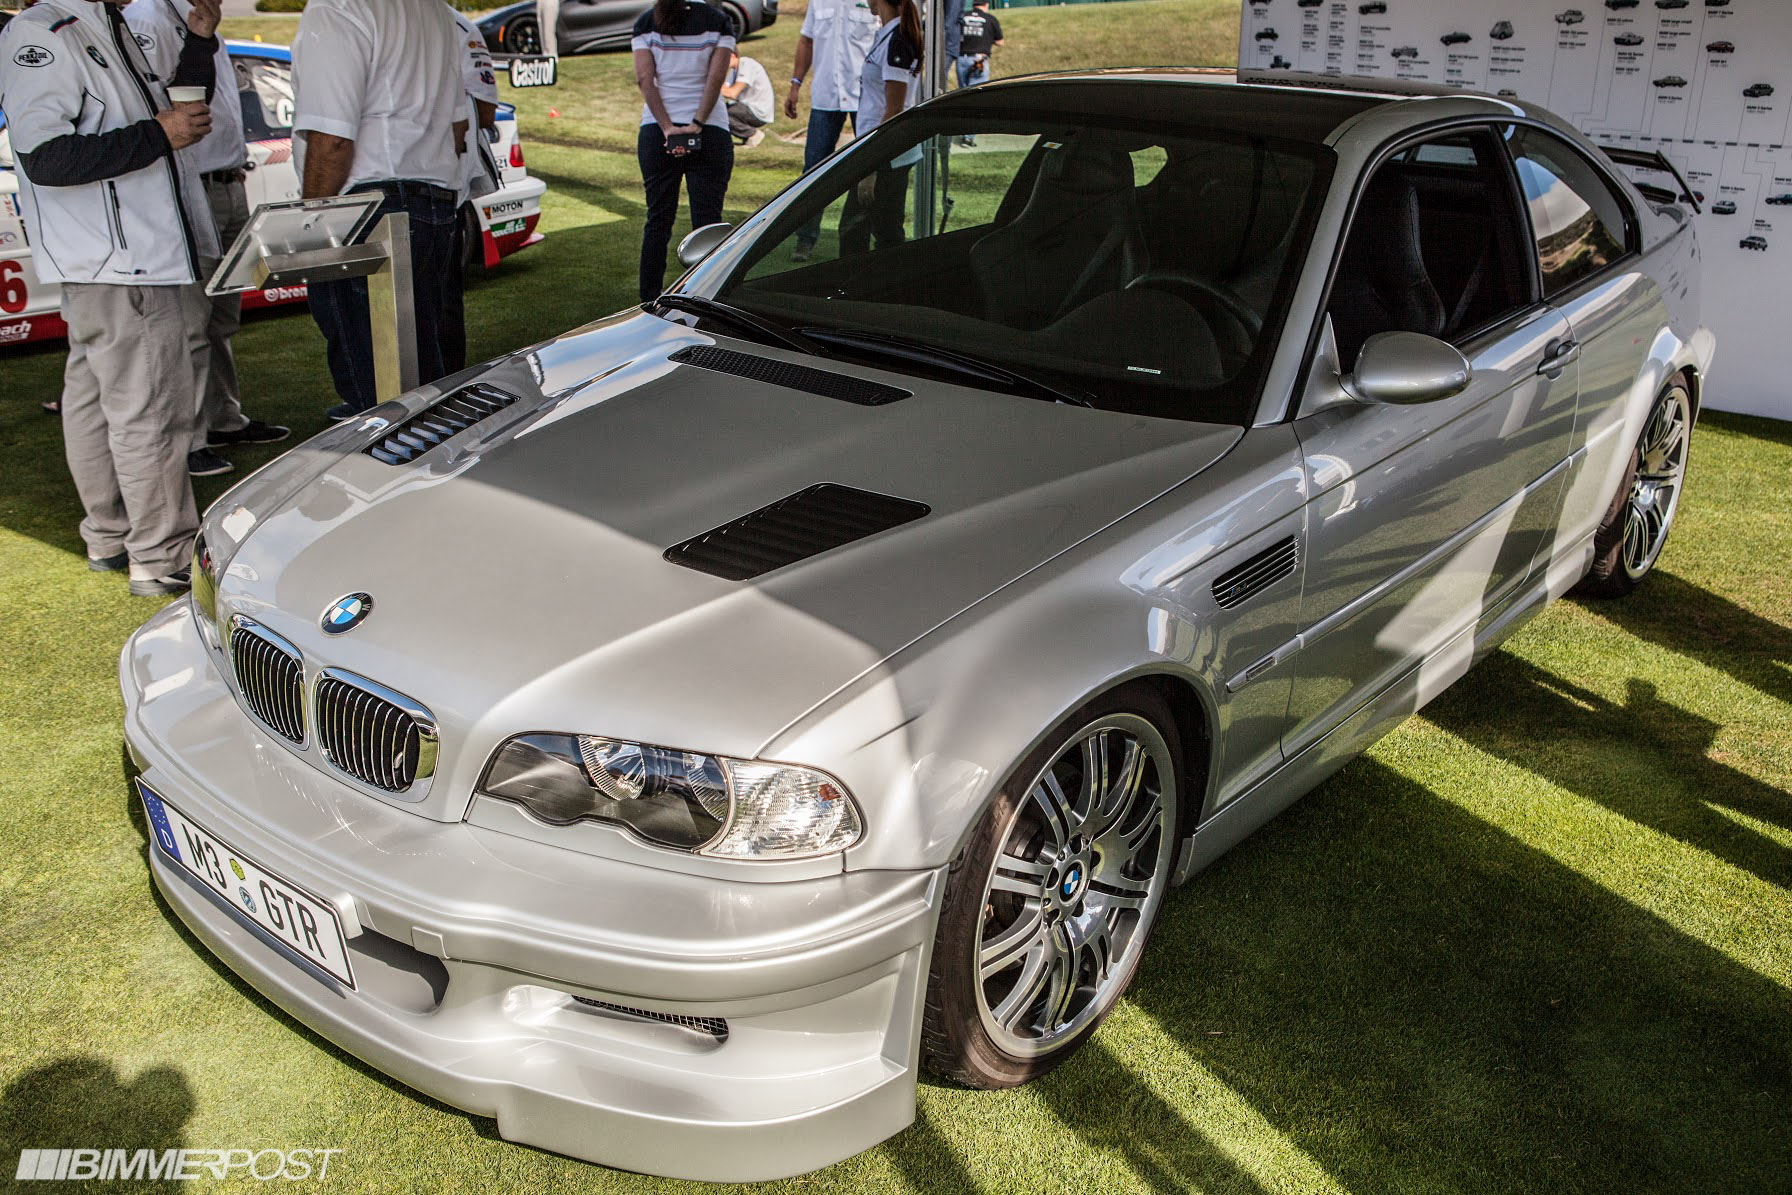 Bmw 2002 For Sale >> E46 M3 GTR Race and Road Car Presented at Pebble Beach (Live Photos Added)